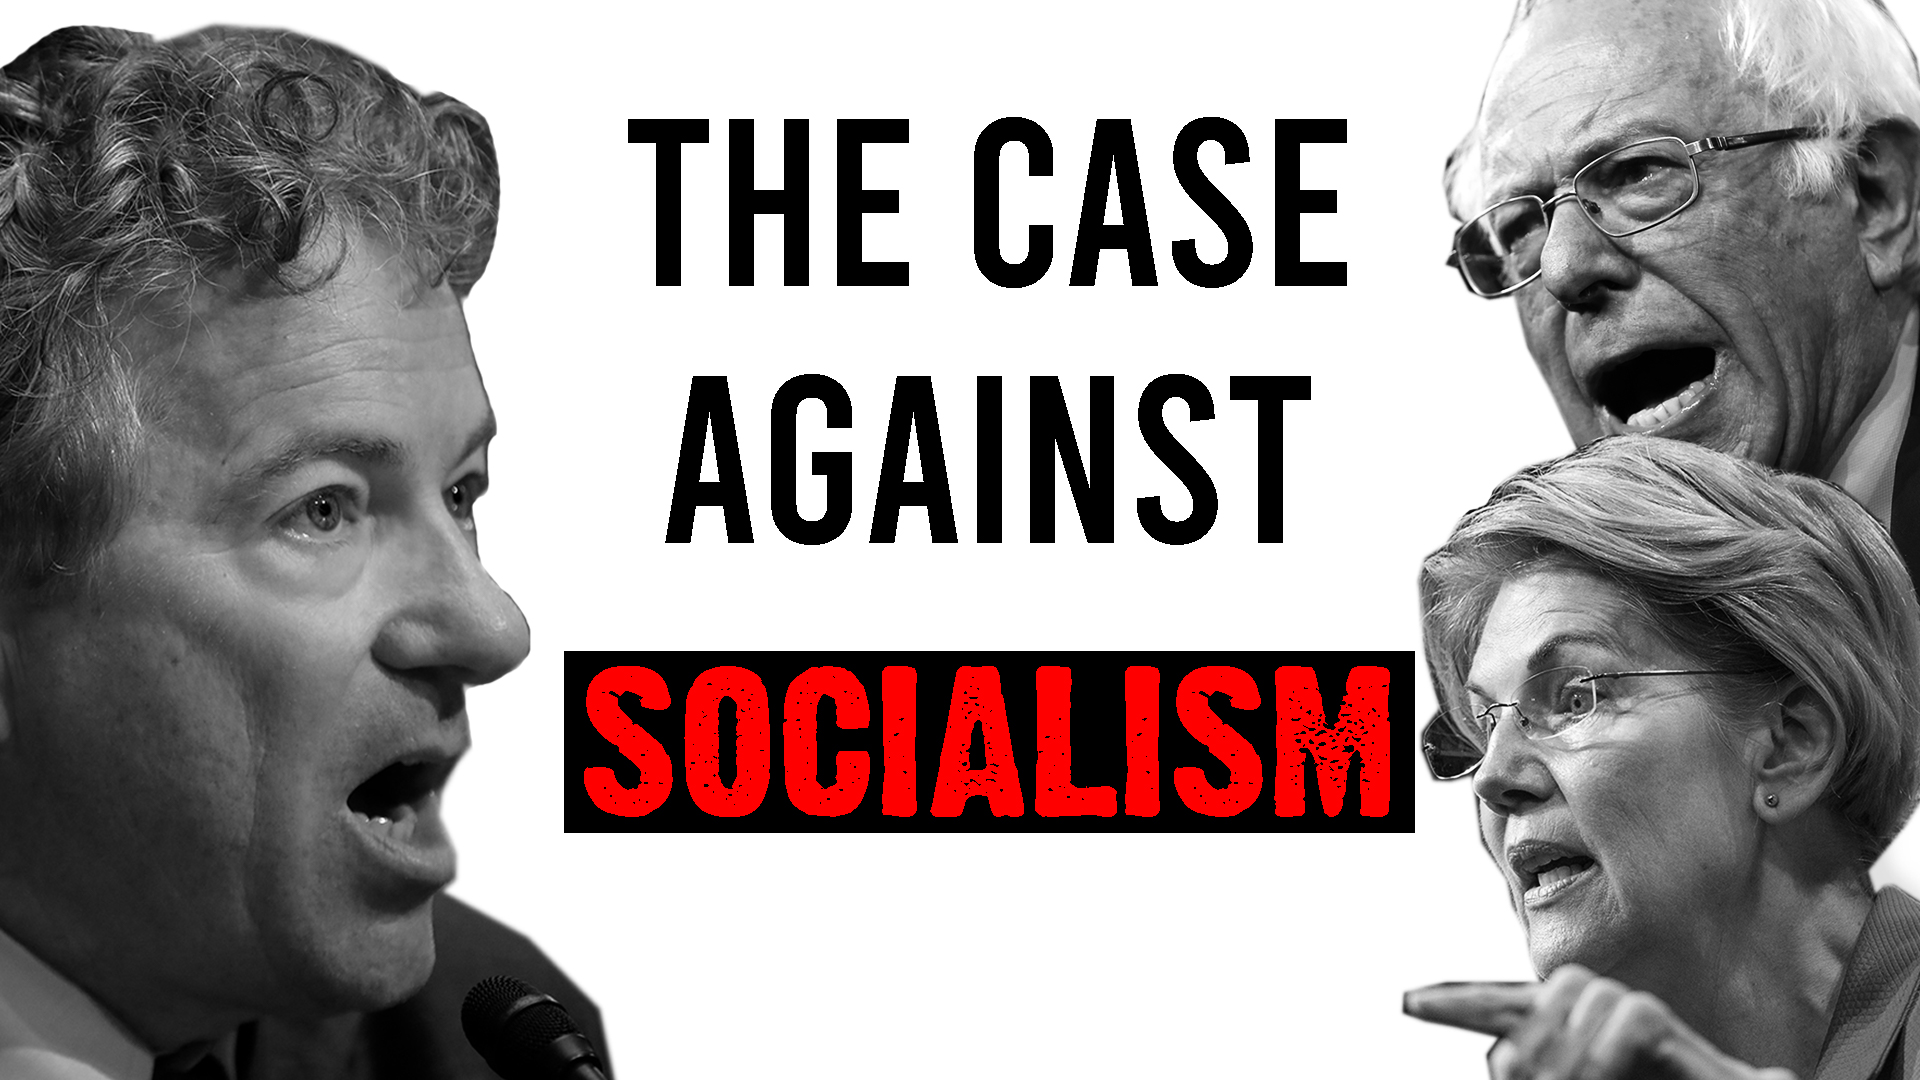 Is There A Difference Between Socialism And 'Democratic Socialism'? We Asked Sen. Rand Paul